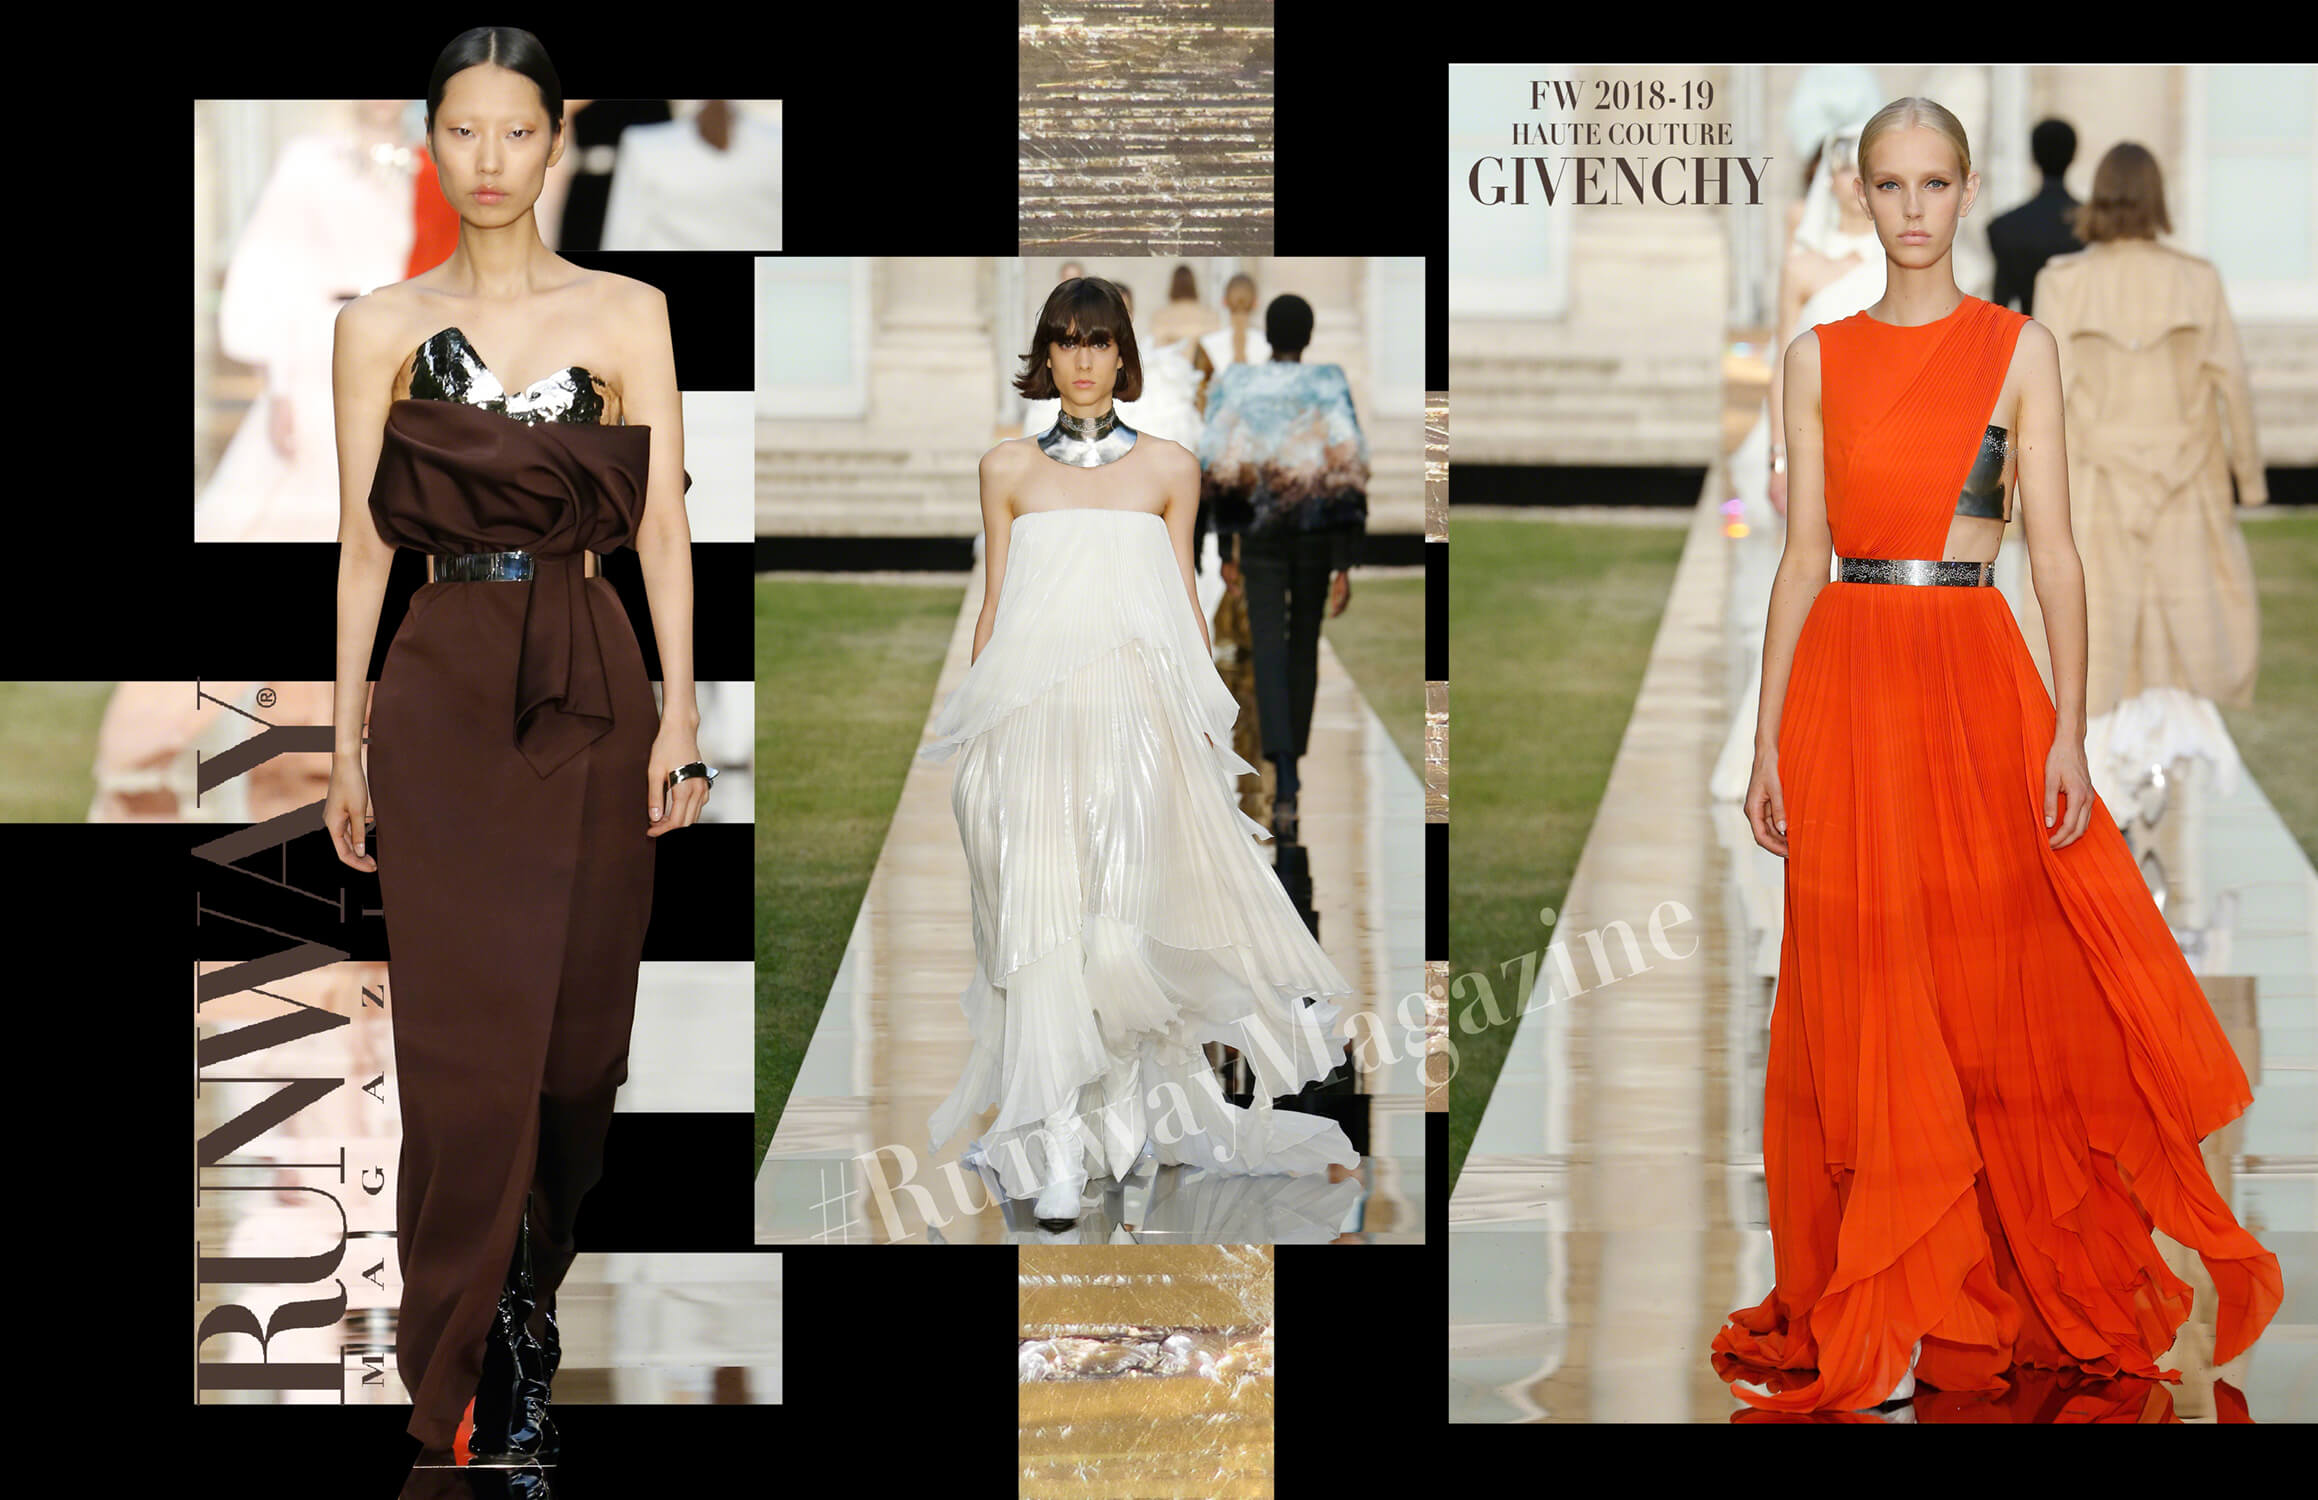 GIVENCHY Haute Couture Fall Winter 2018-2019 Runway Magazine